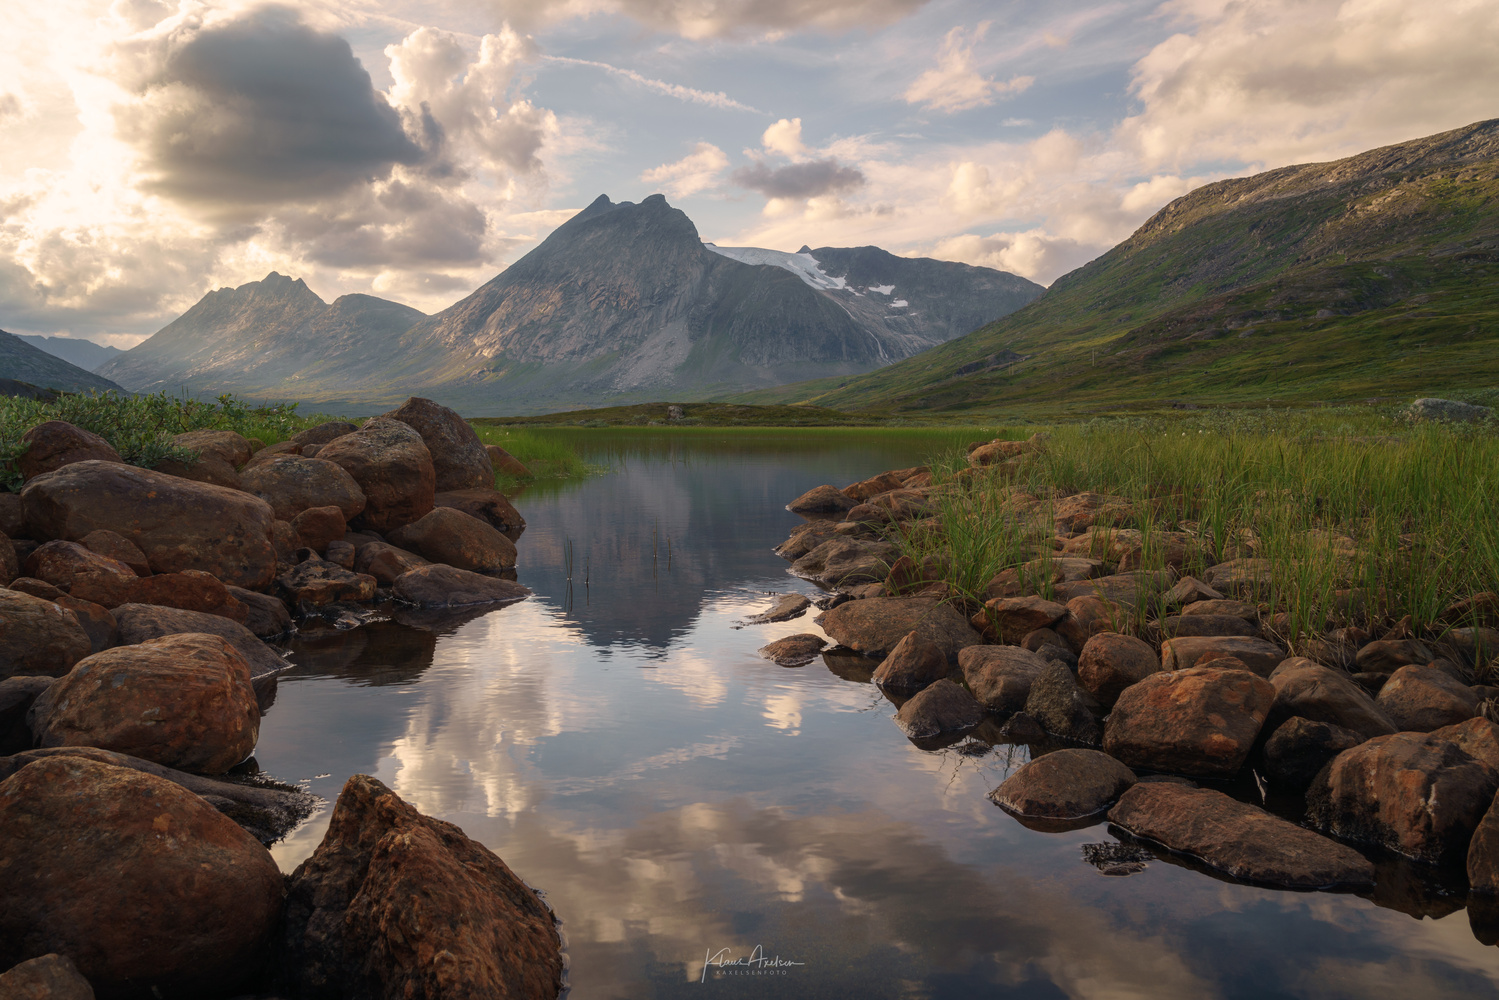 «Landscape from the north» by Klaus Axelsen